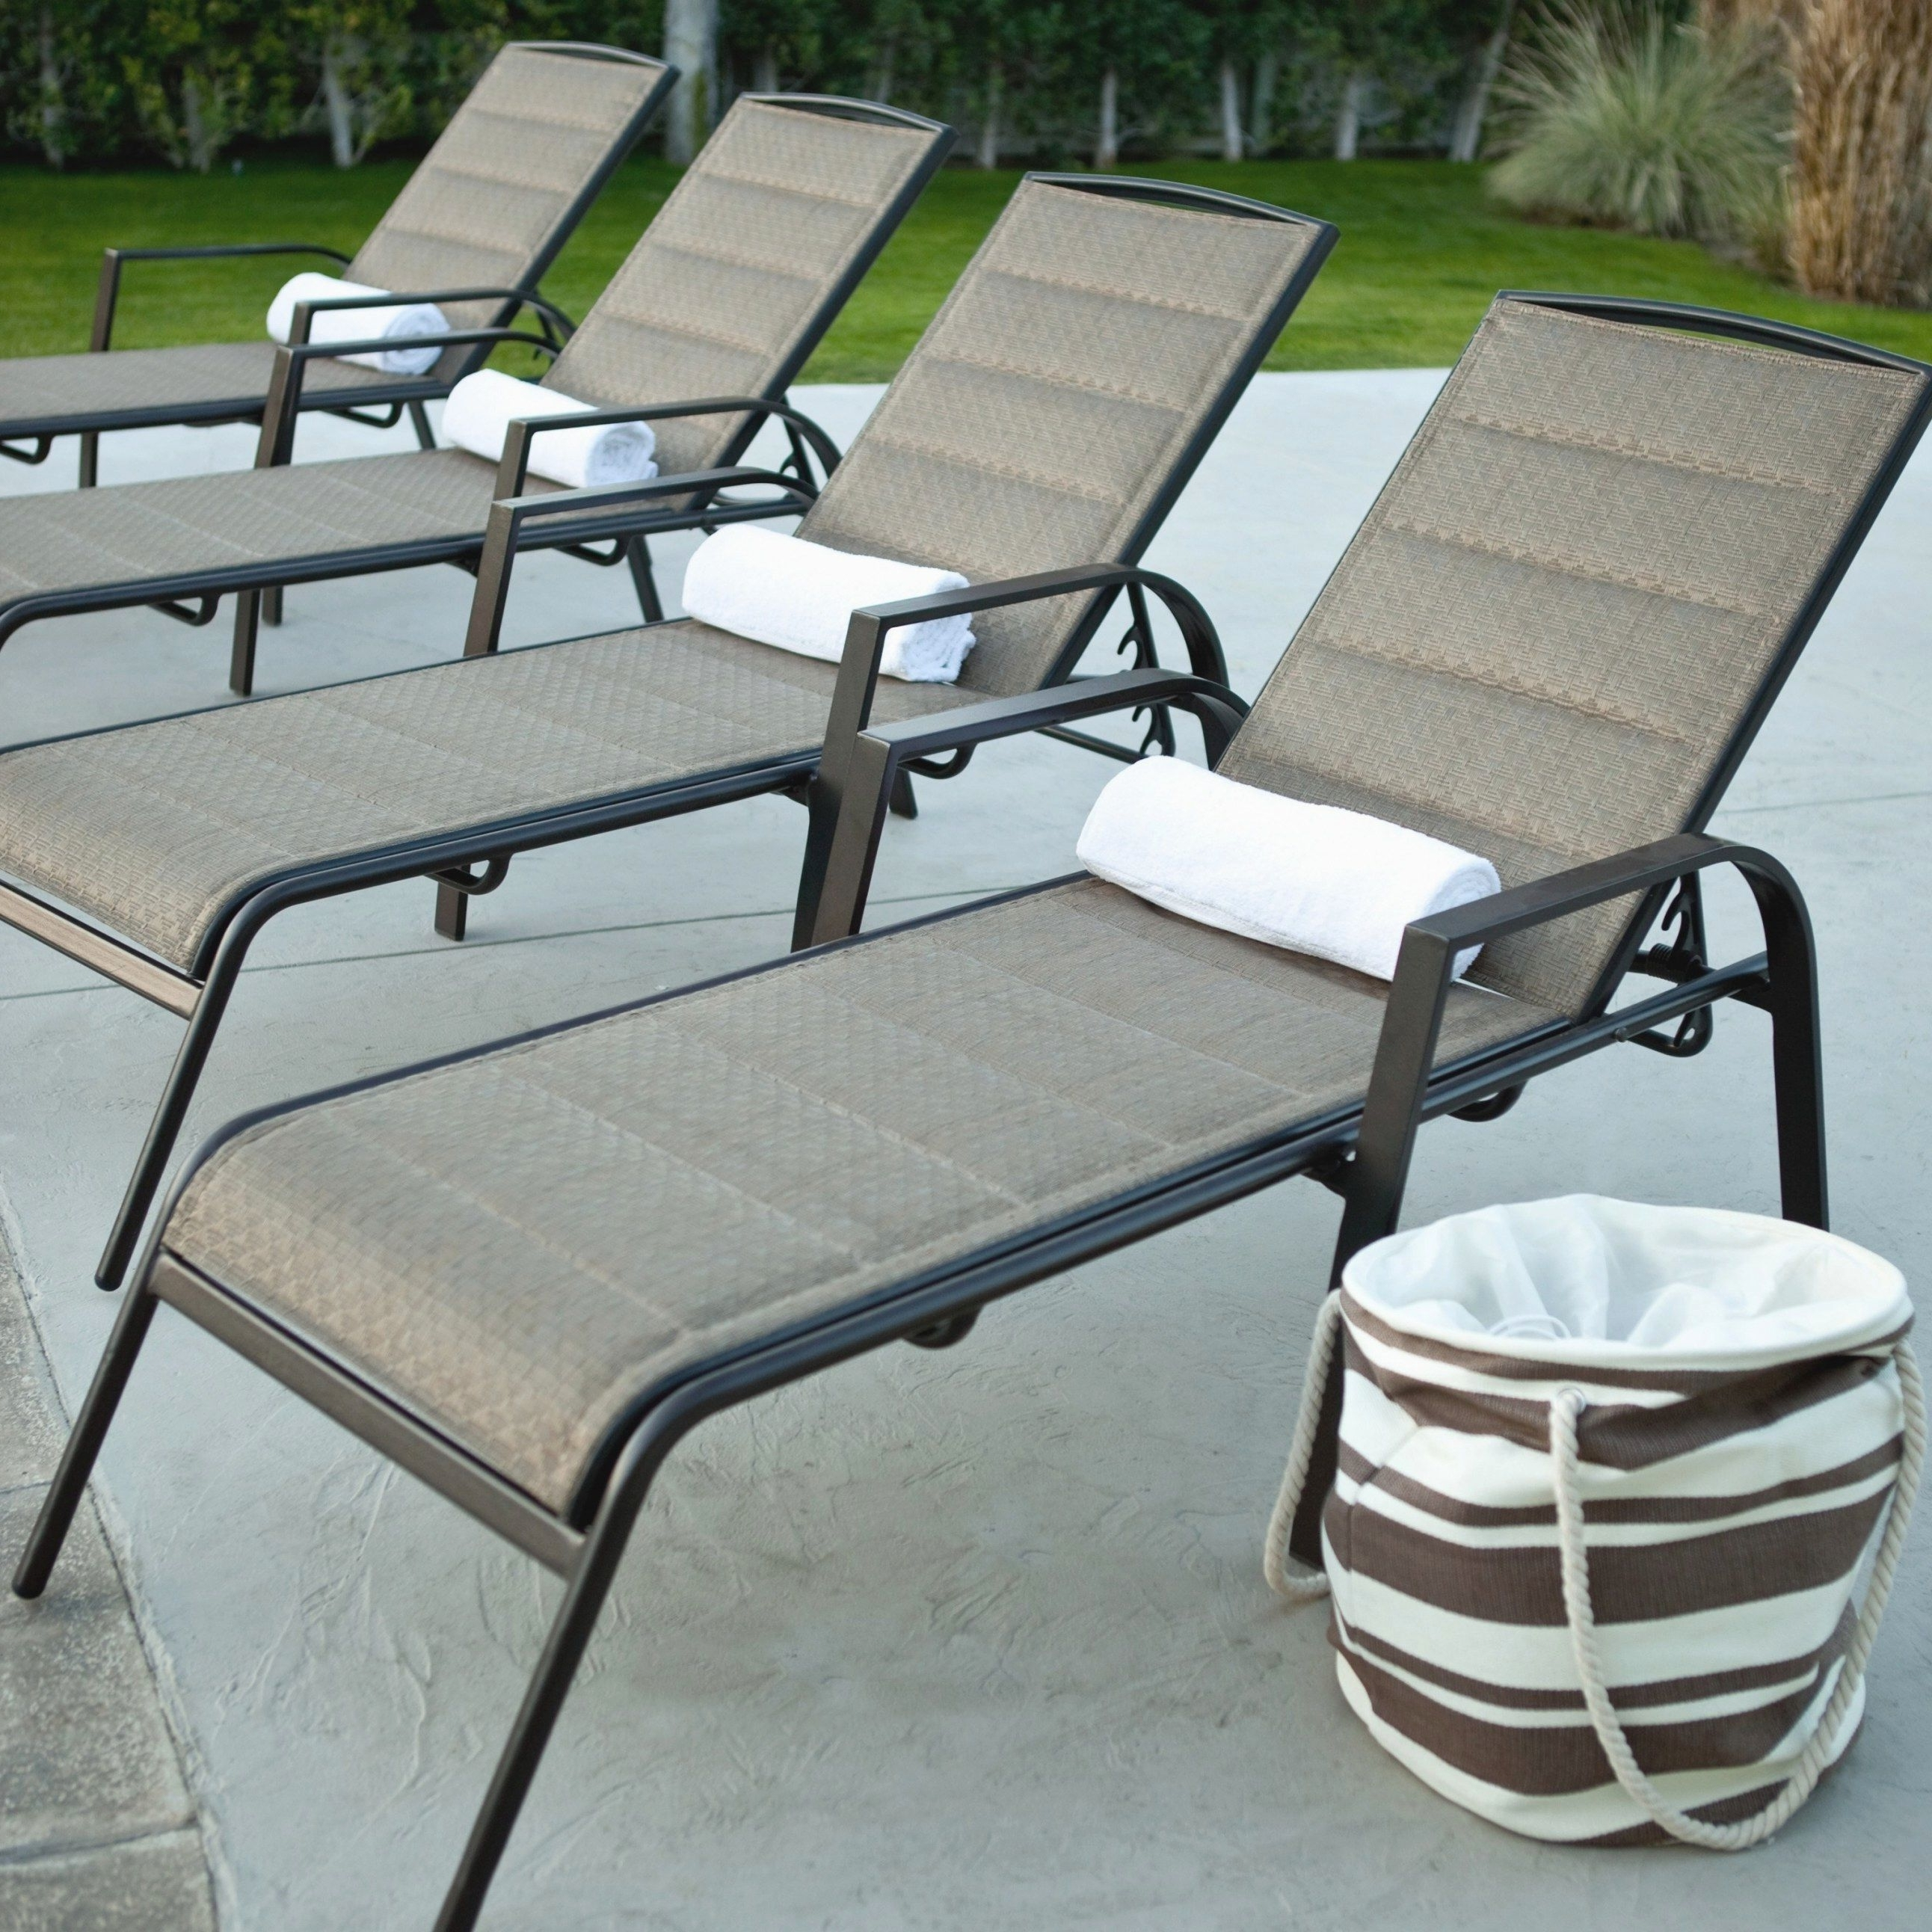 Most Recent Chaise Lounge Chairs For Outdoor Inside Outdoor Chaise Lounge Chairs Under 100 Modern Fresh Ideas (View 6 of 15)